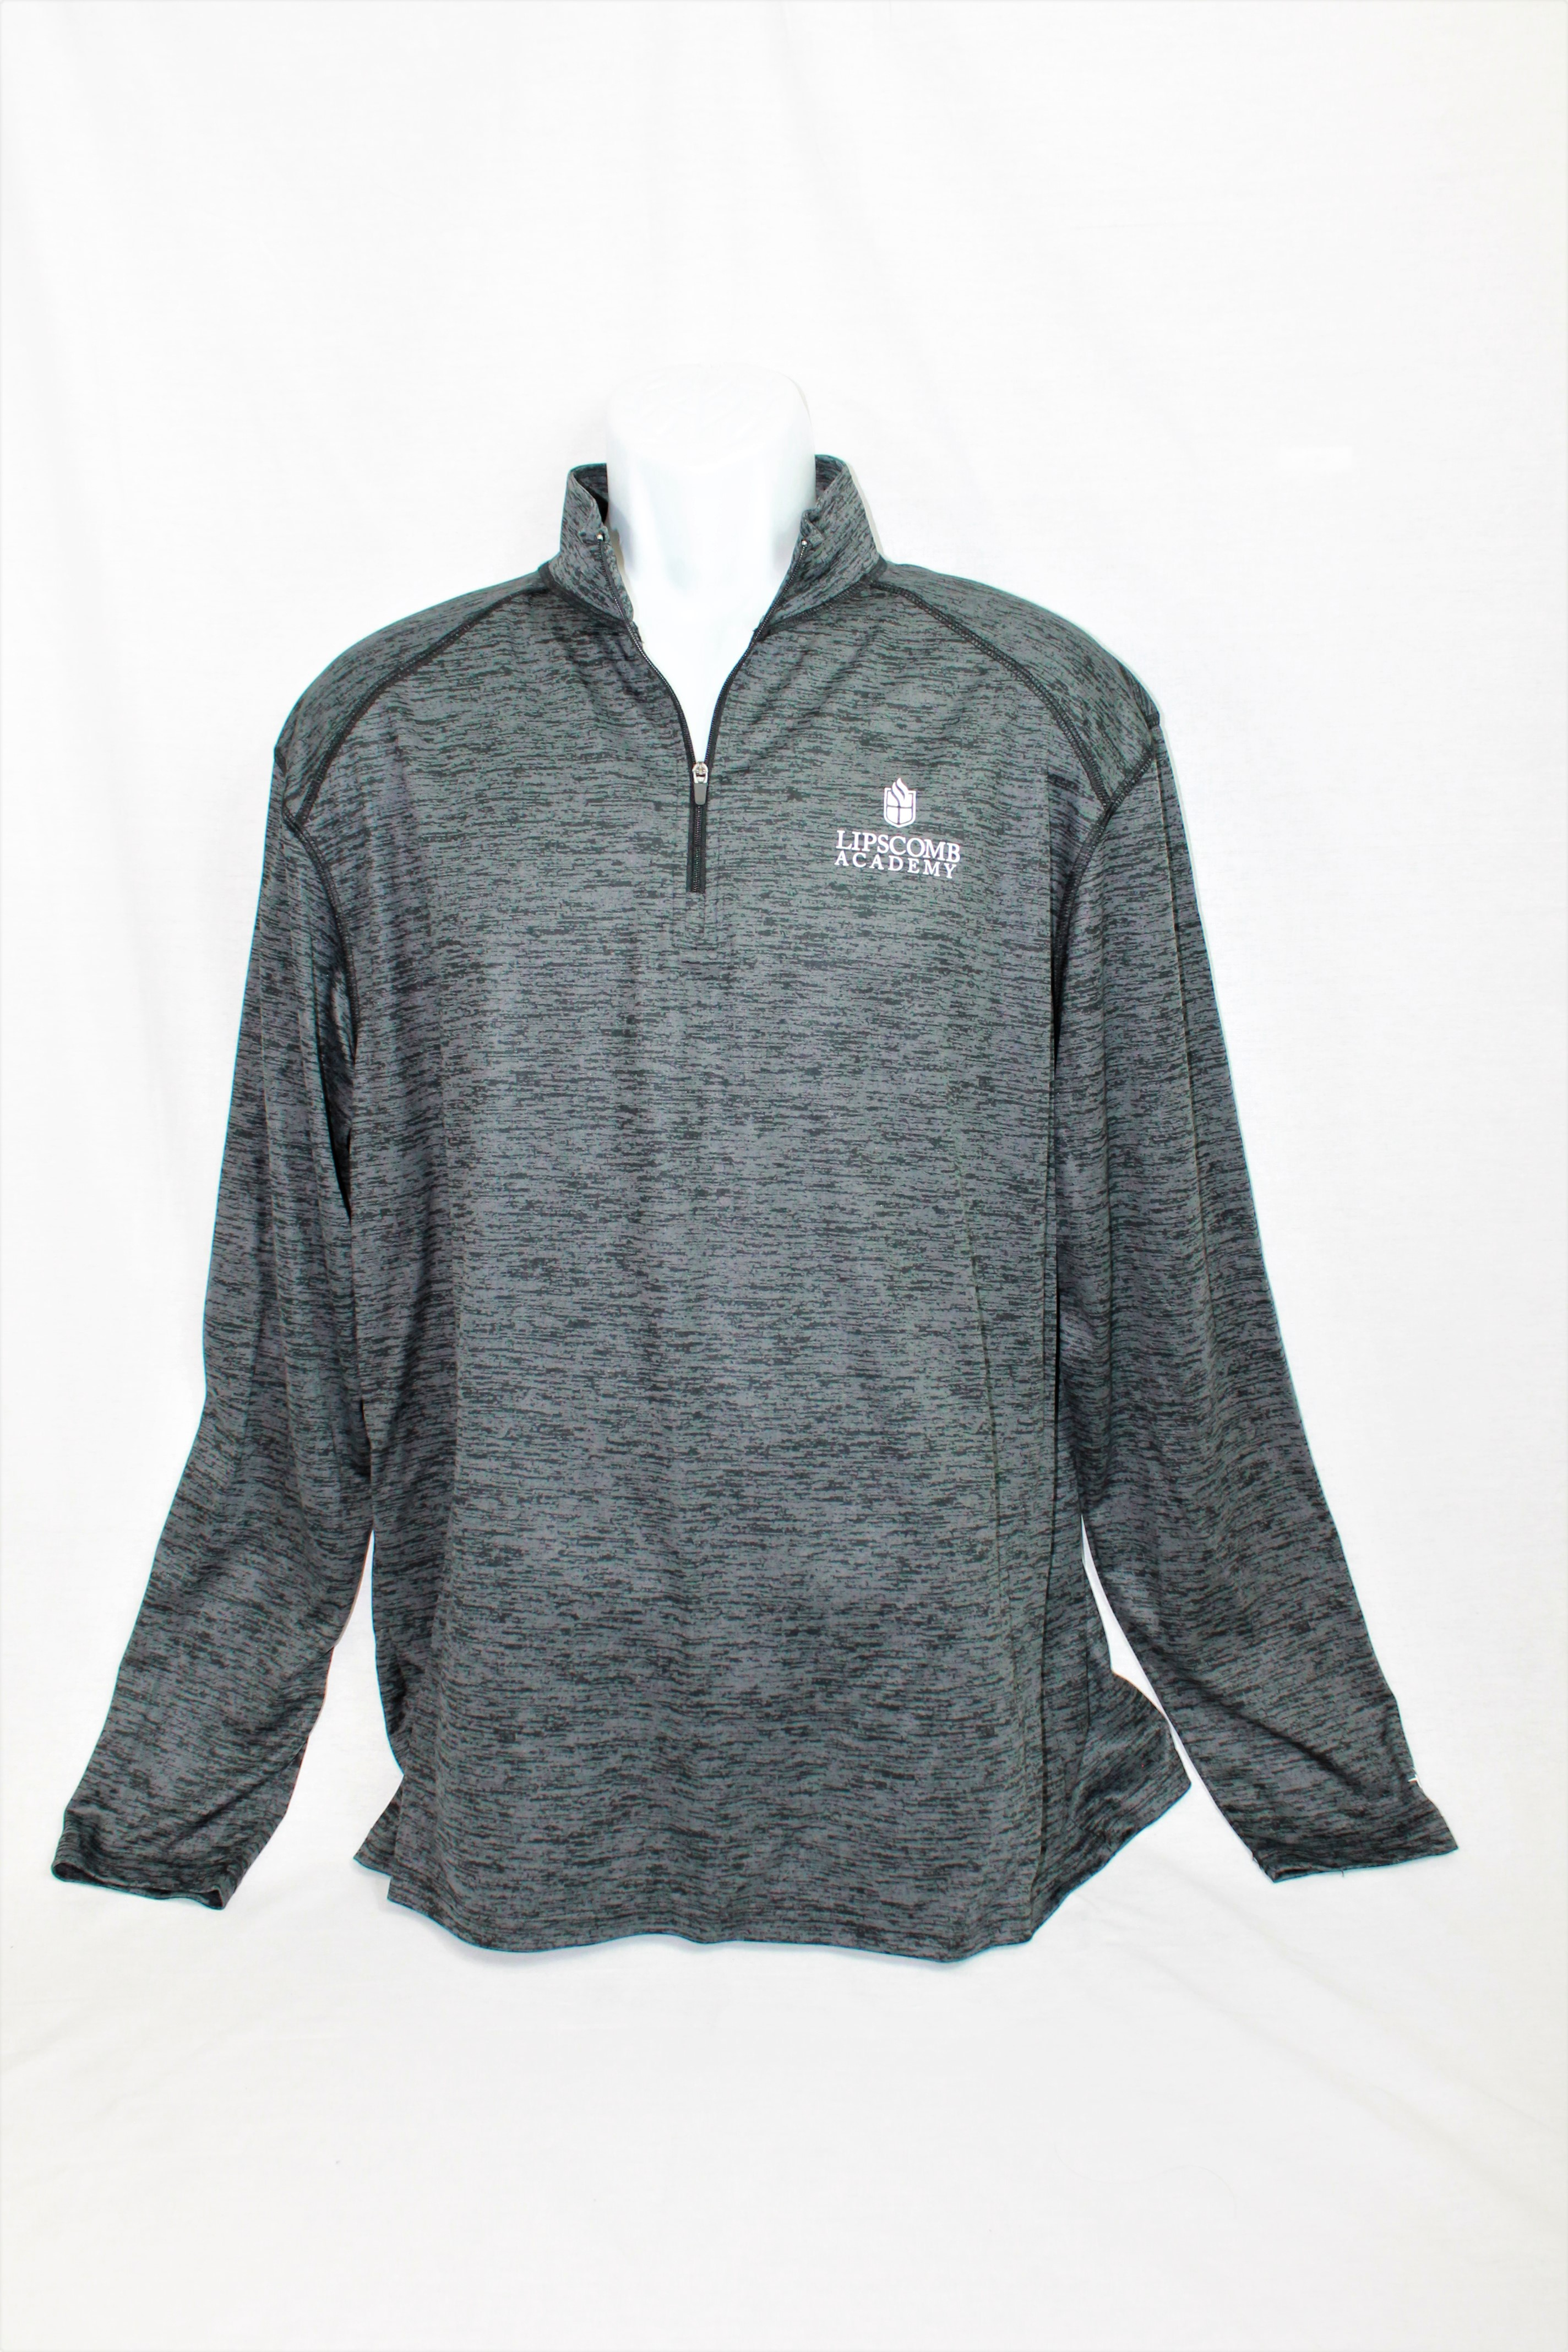 1/4 Zip Lightweight Pullover - Heather Grey or Black